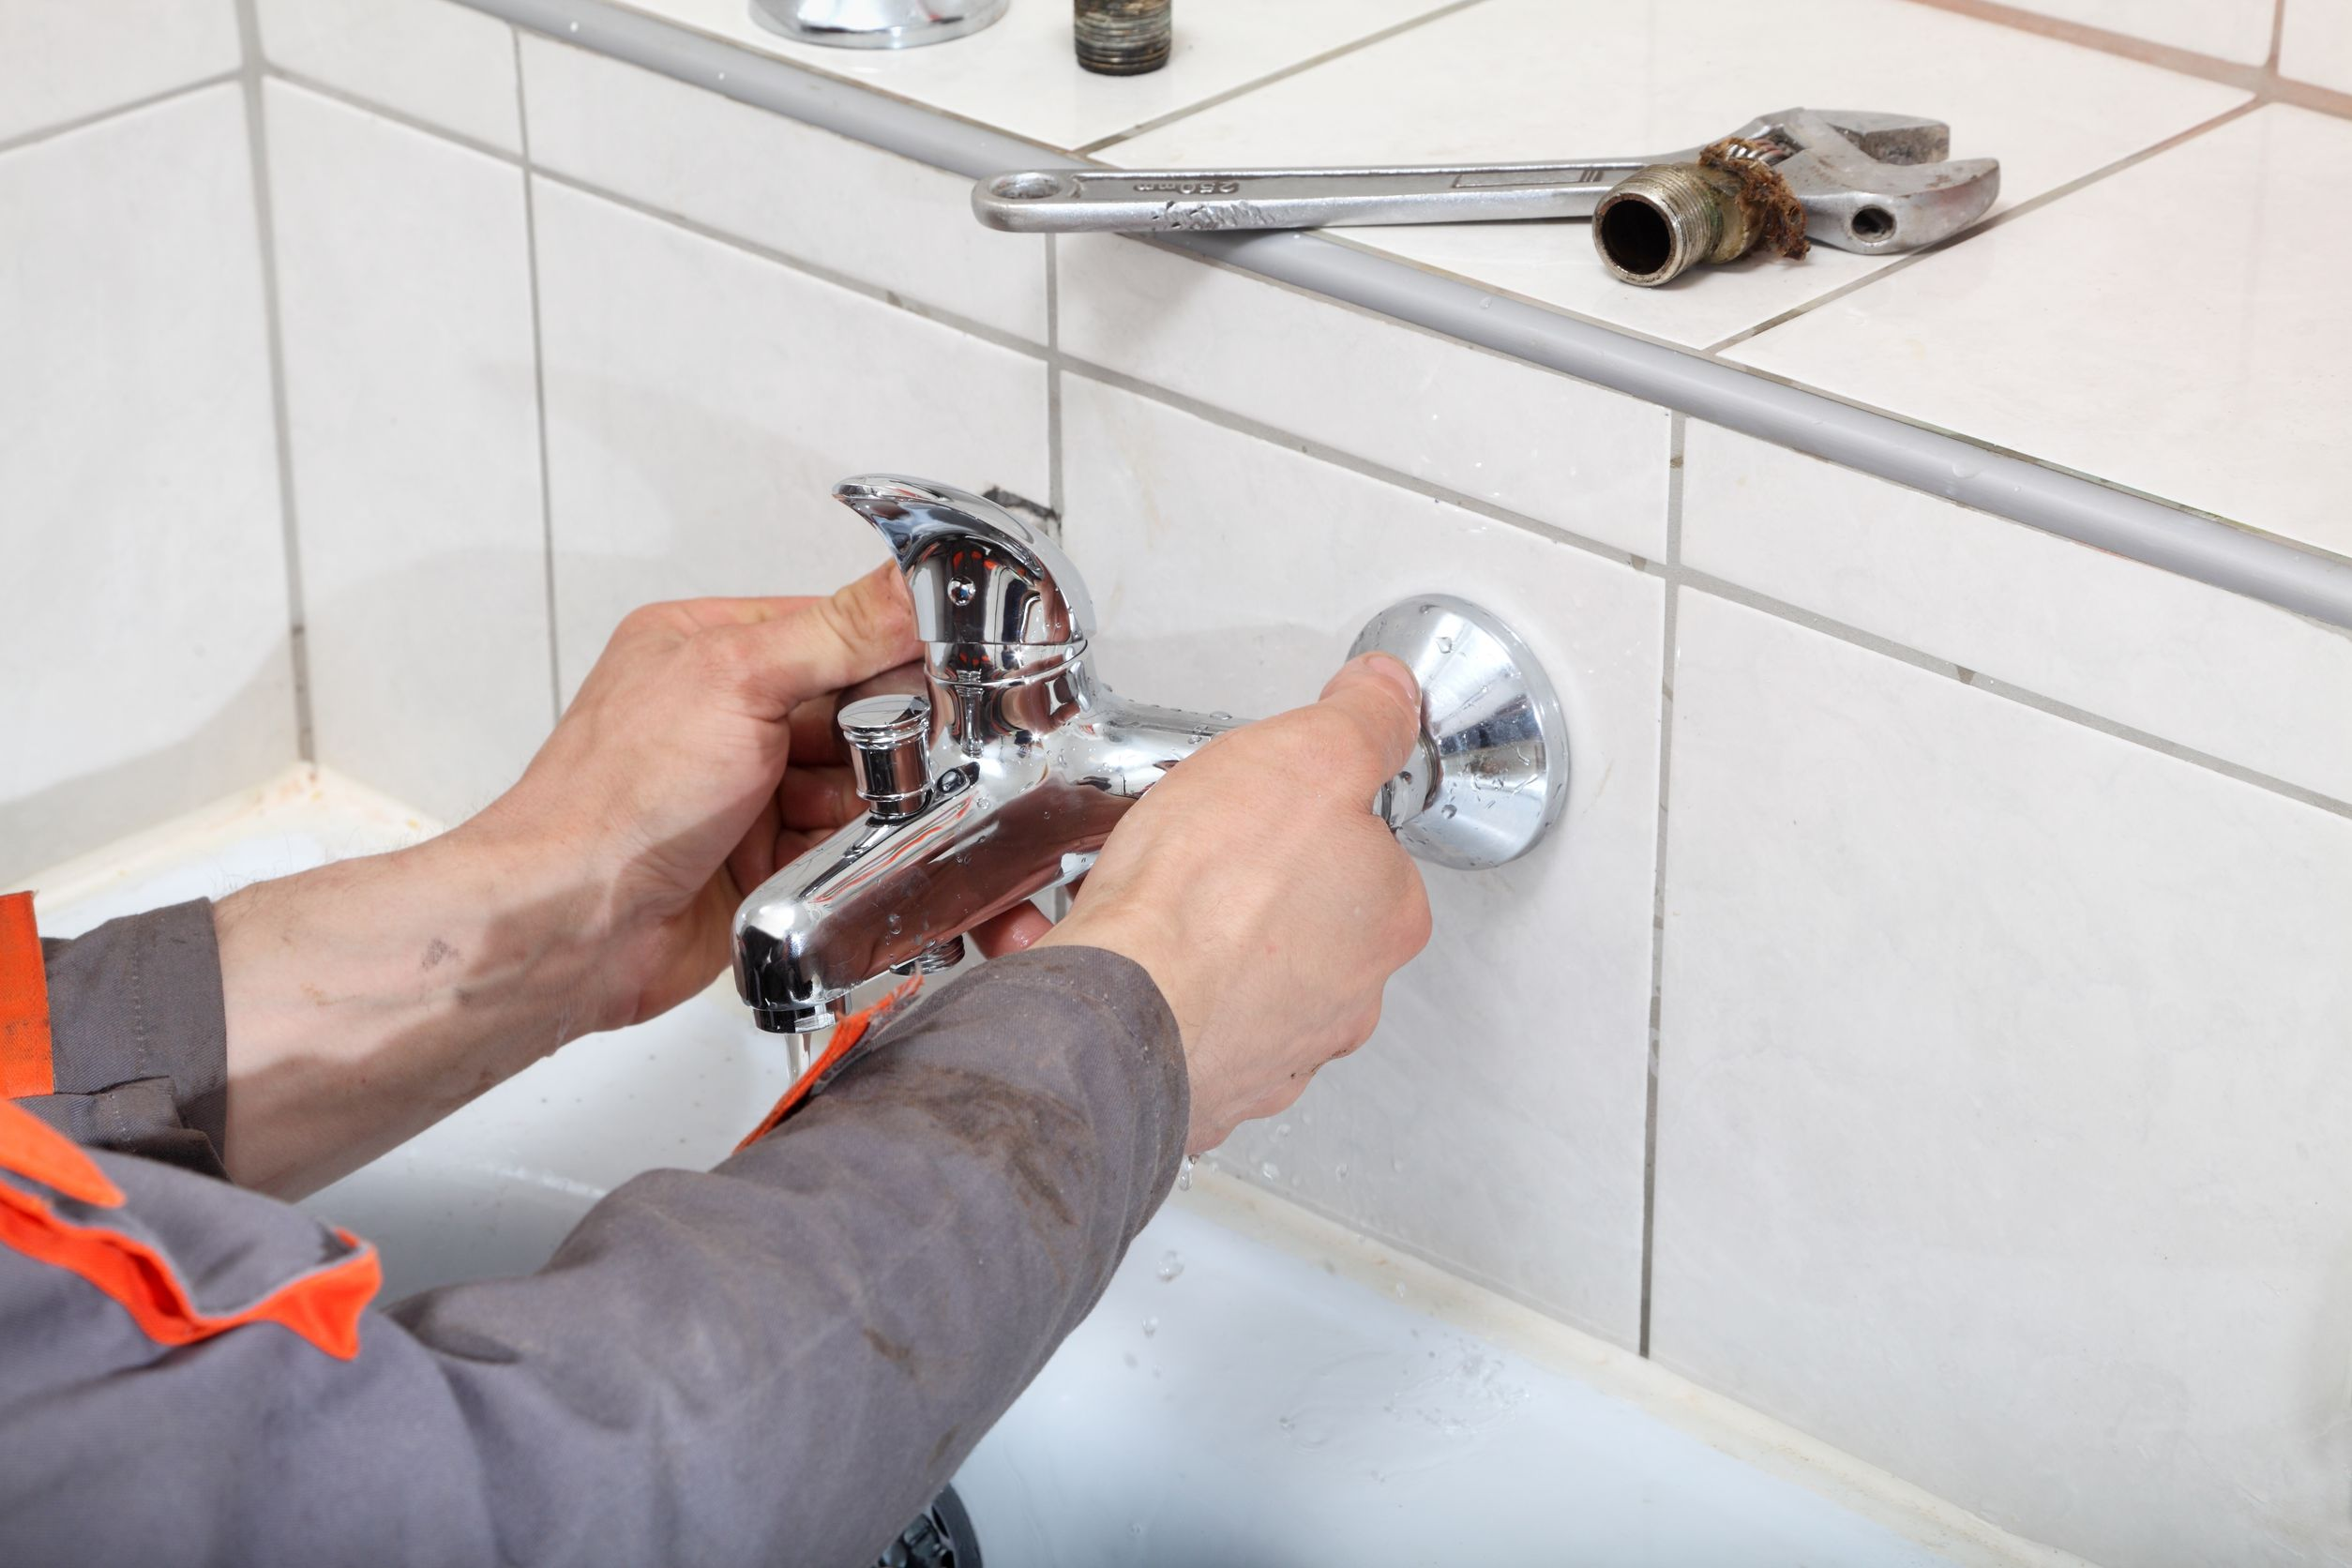 Is Your Plumbing Winter Ready? Call a Professional Plumber in Fairfax County